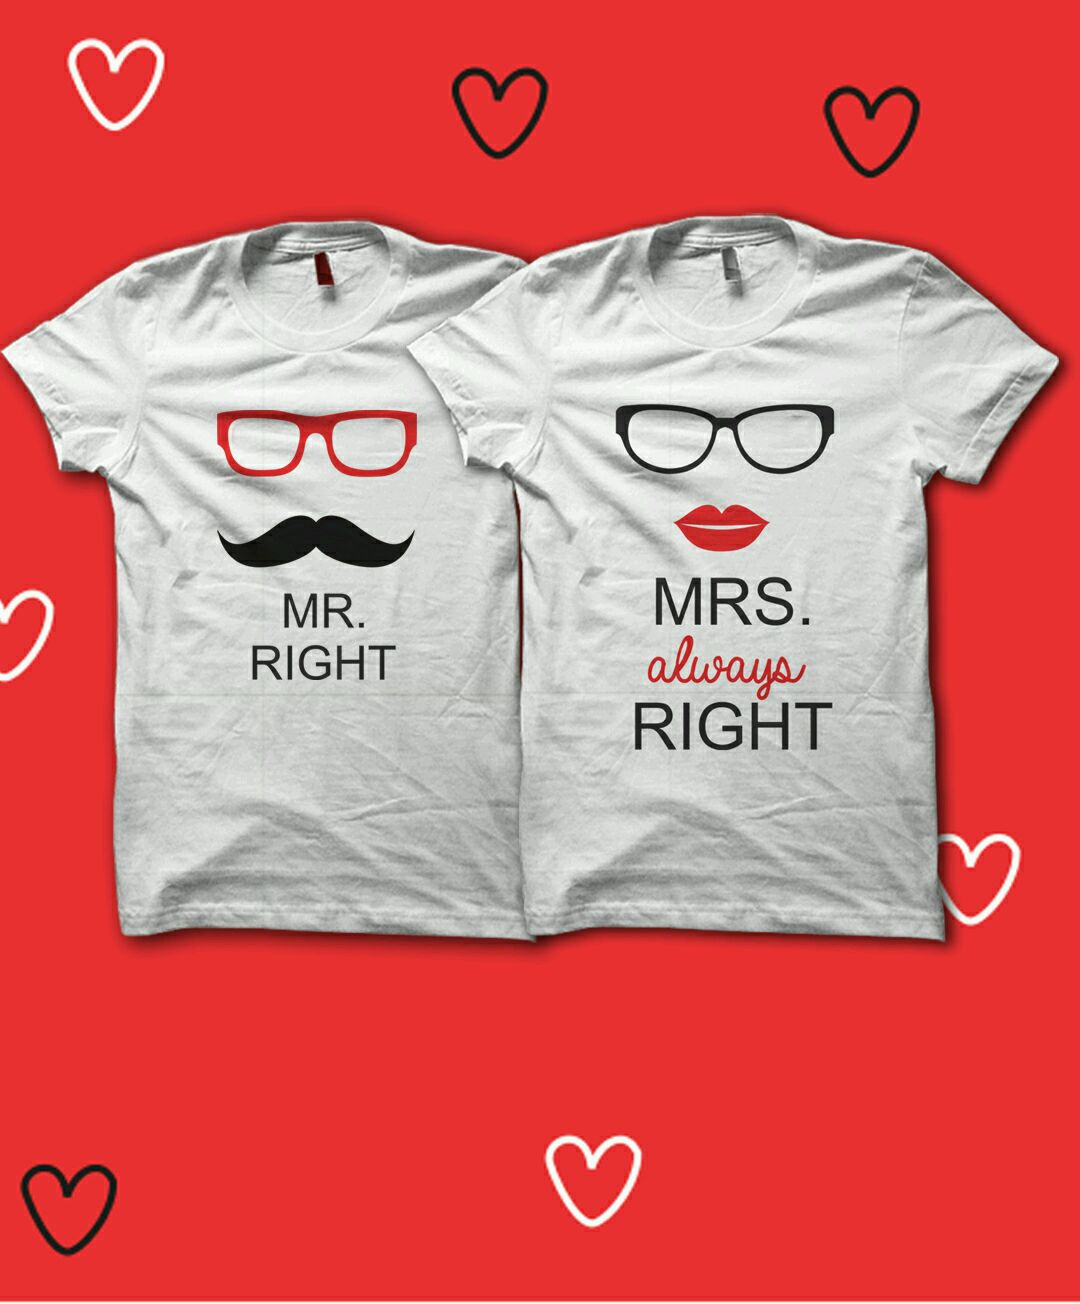 Buy right couple t shirt best prices in india kraftly for Buy couple t shirts online india